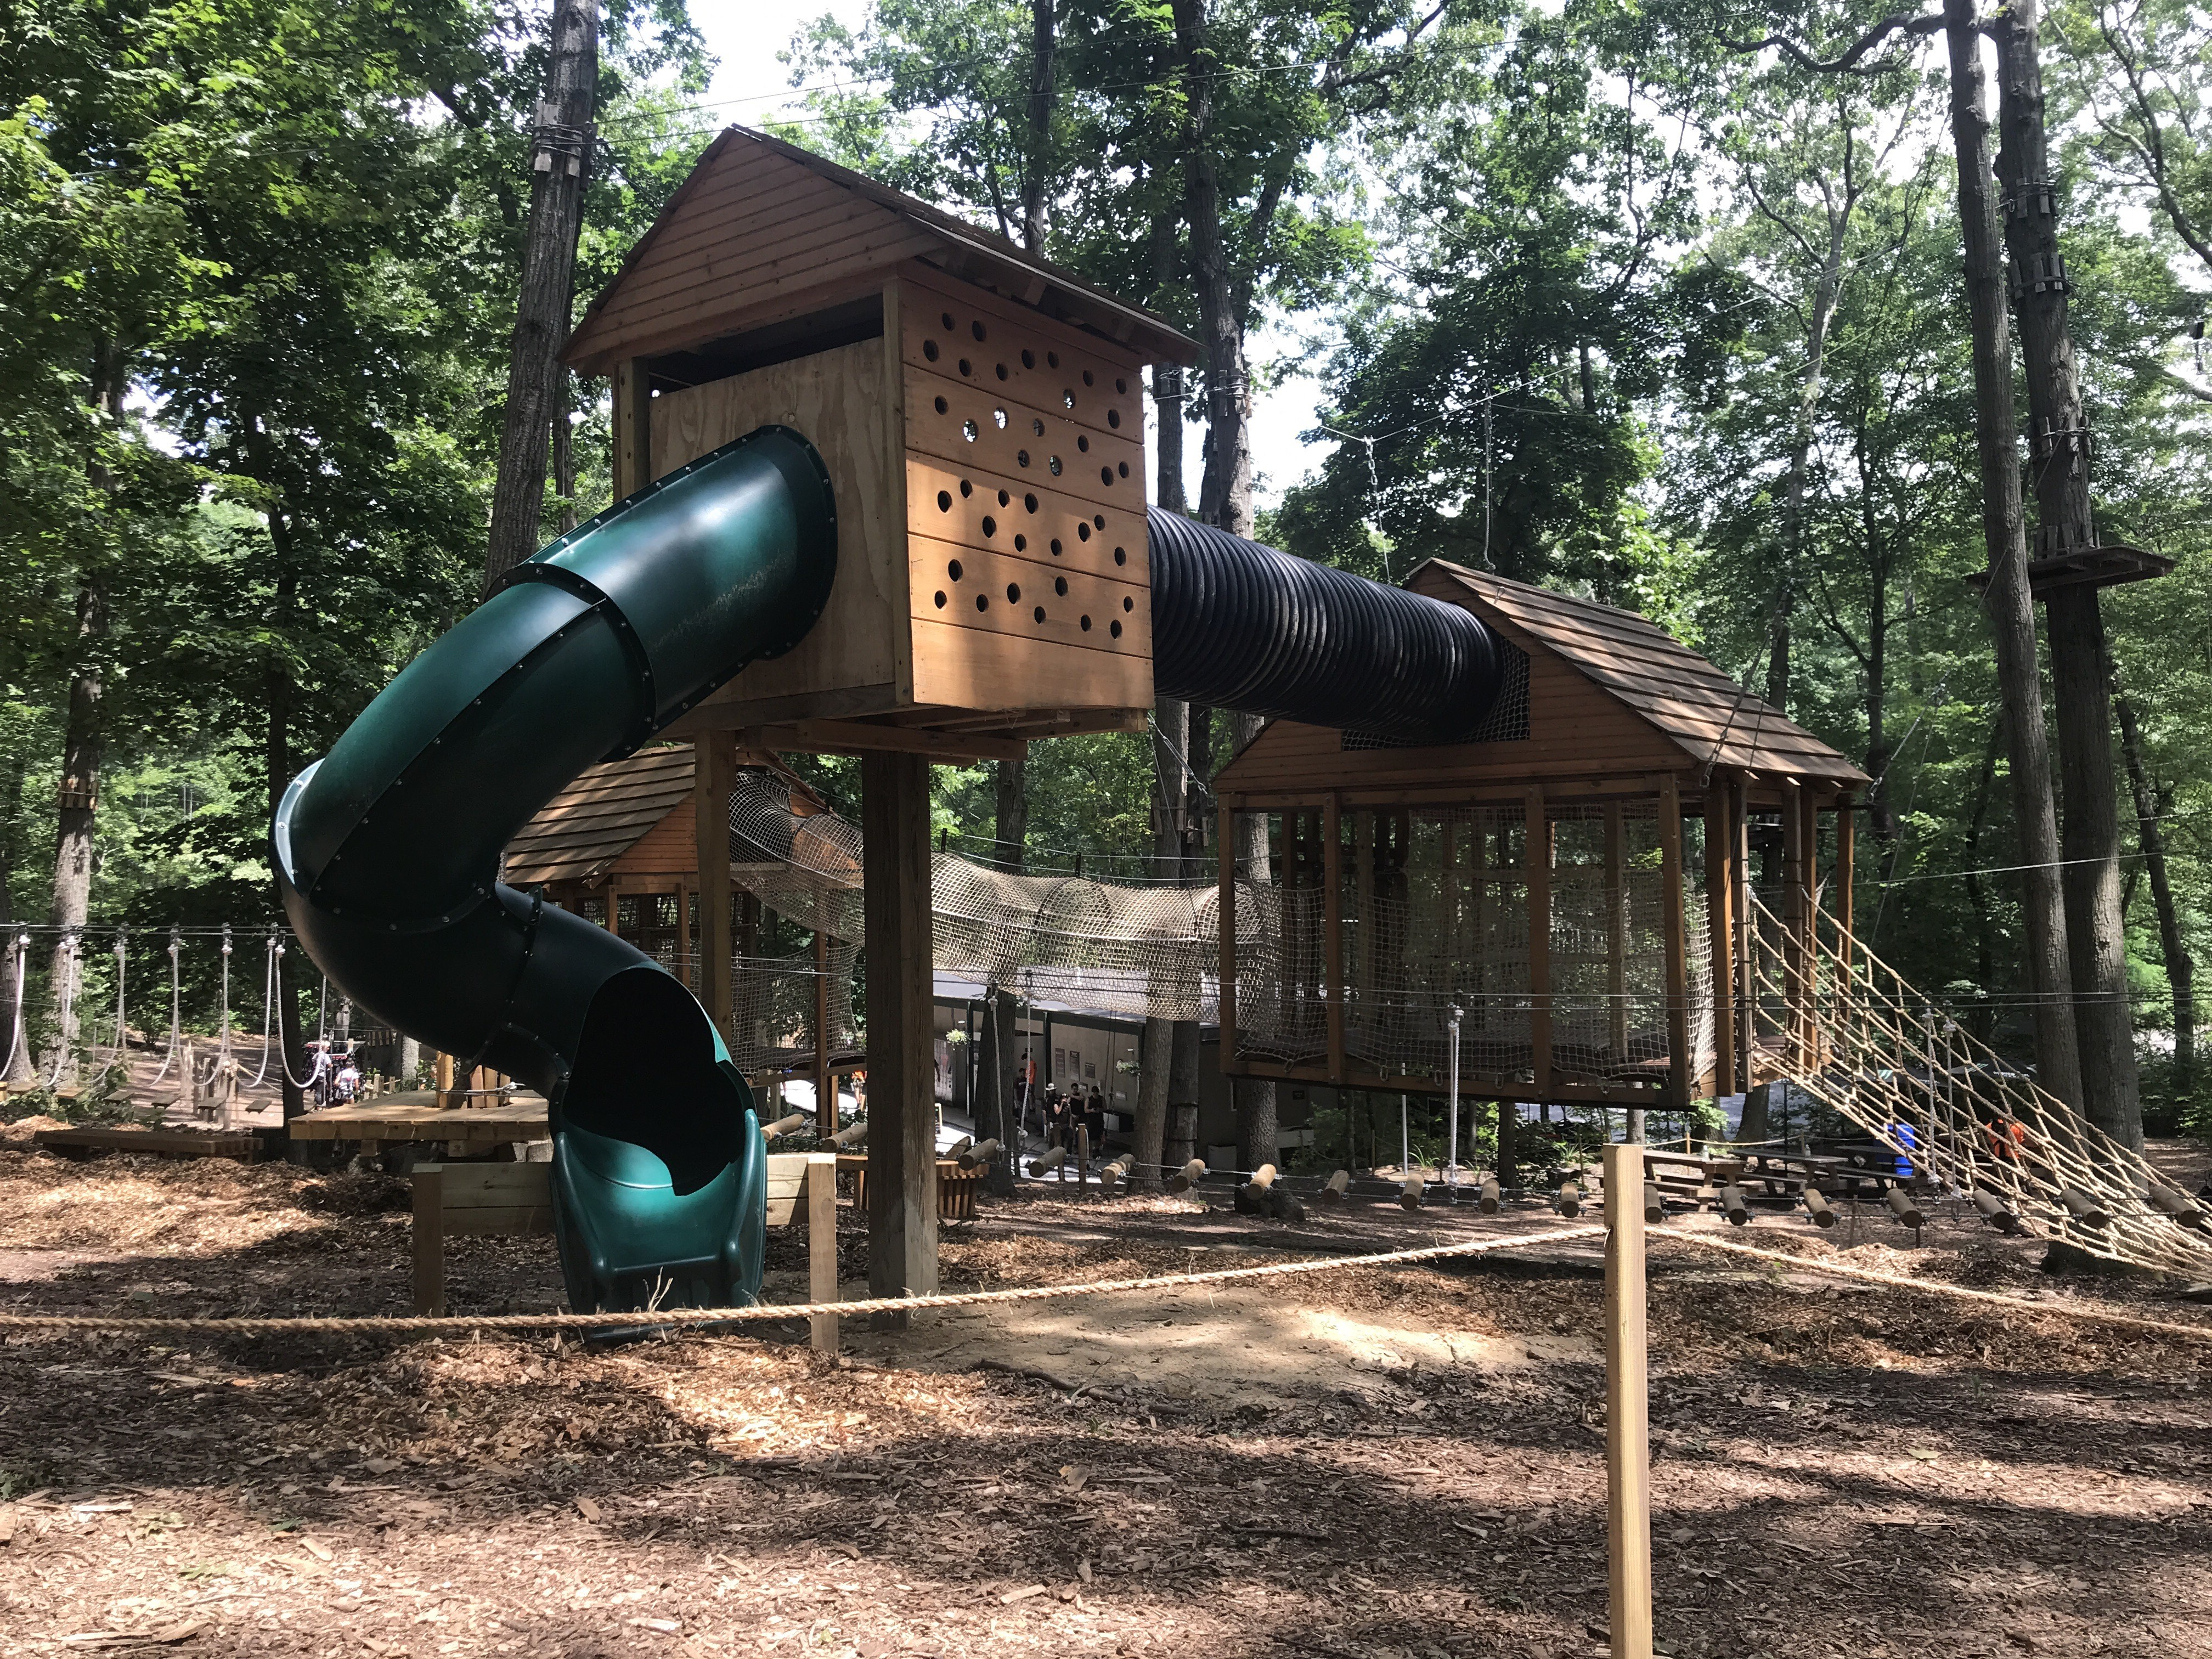 Climbers Age 3 6 Can Now Share The Fun At The Adventure Park At Long Island S New Adventure Playground